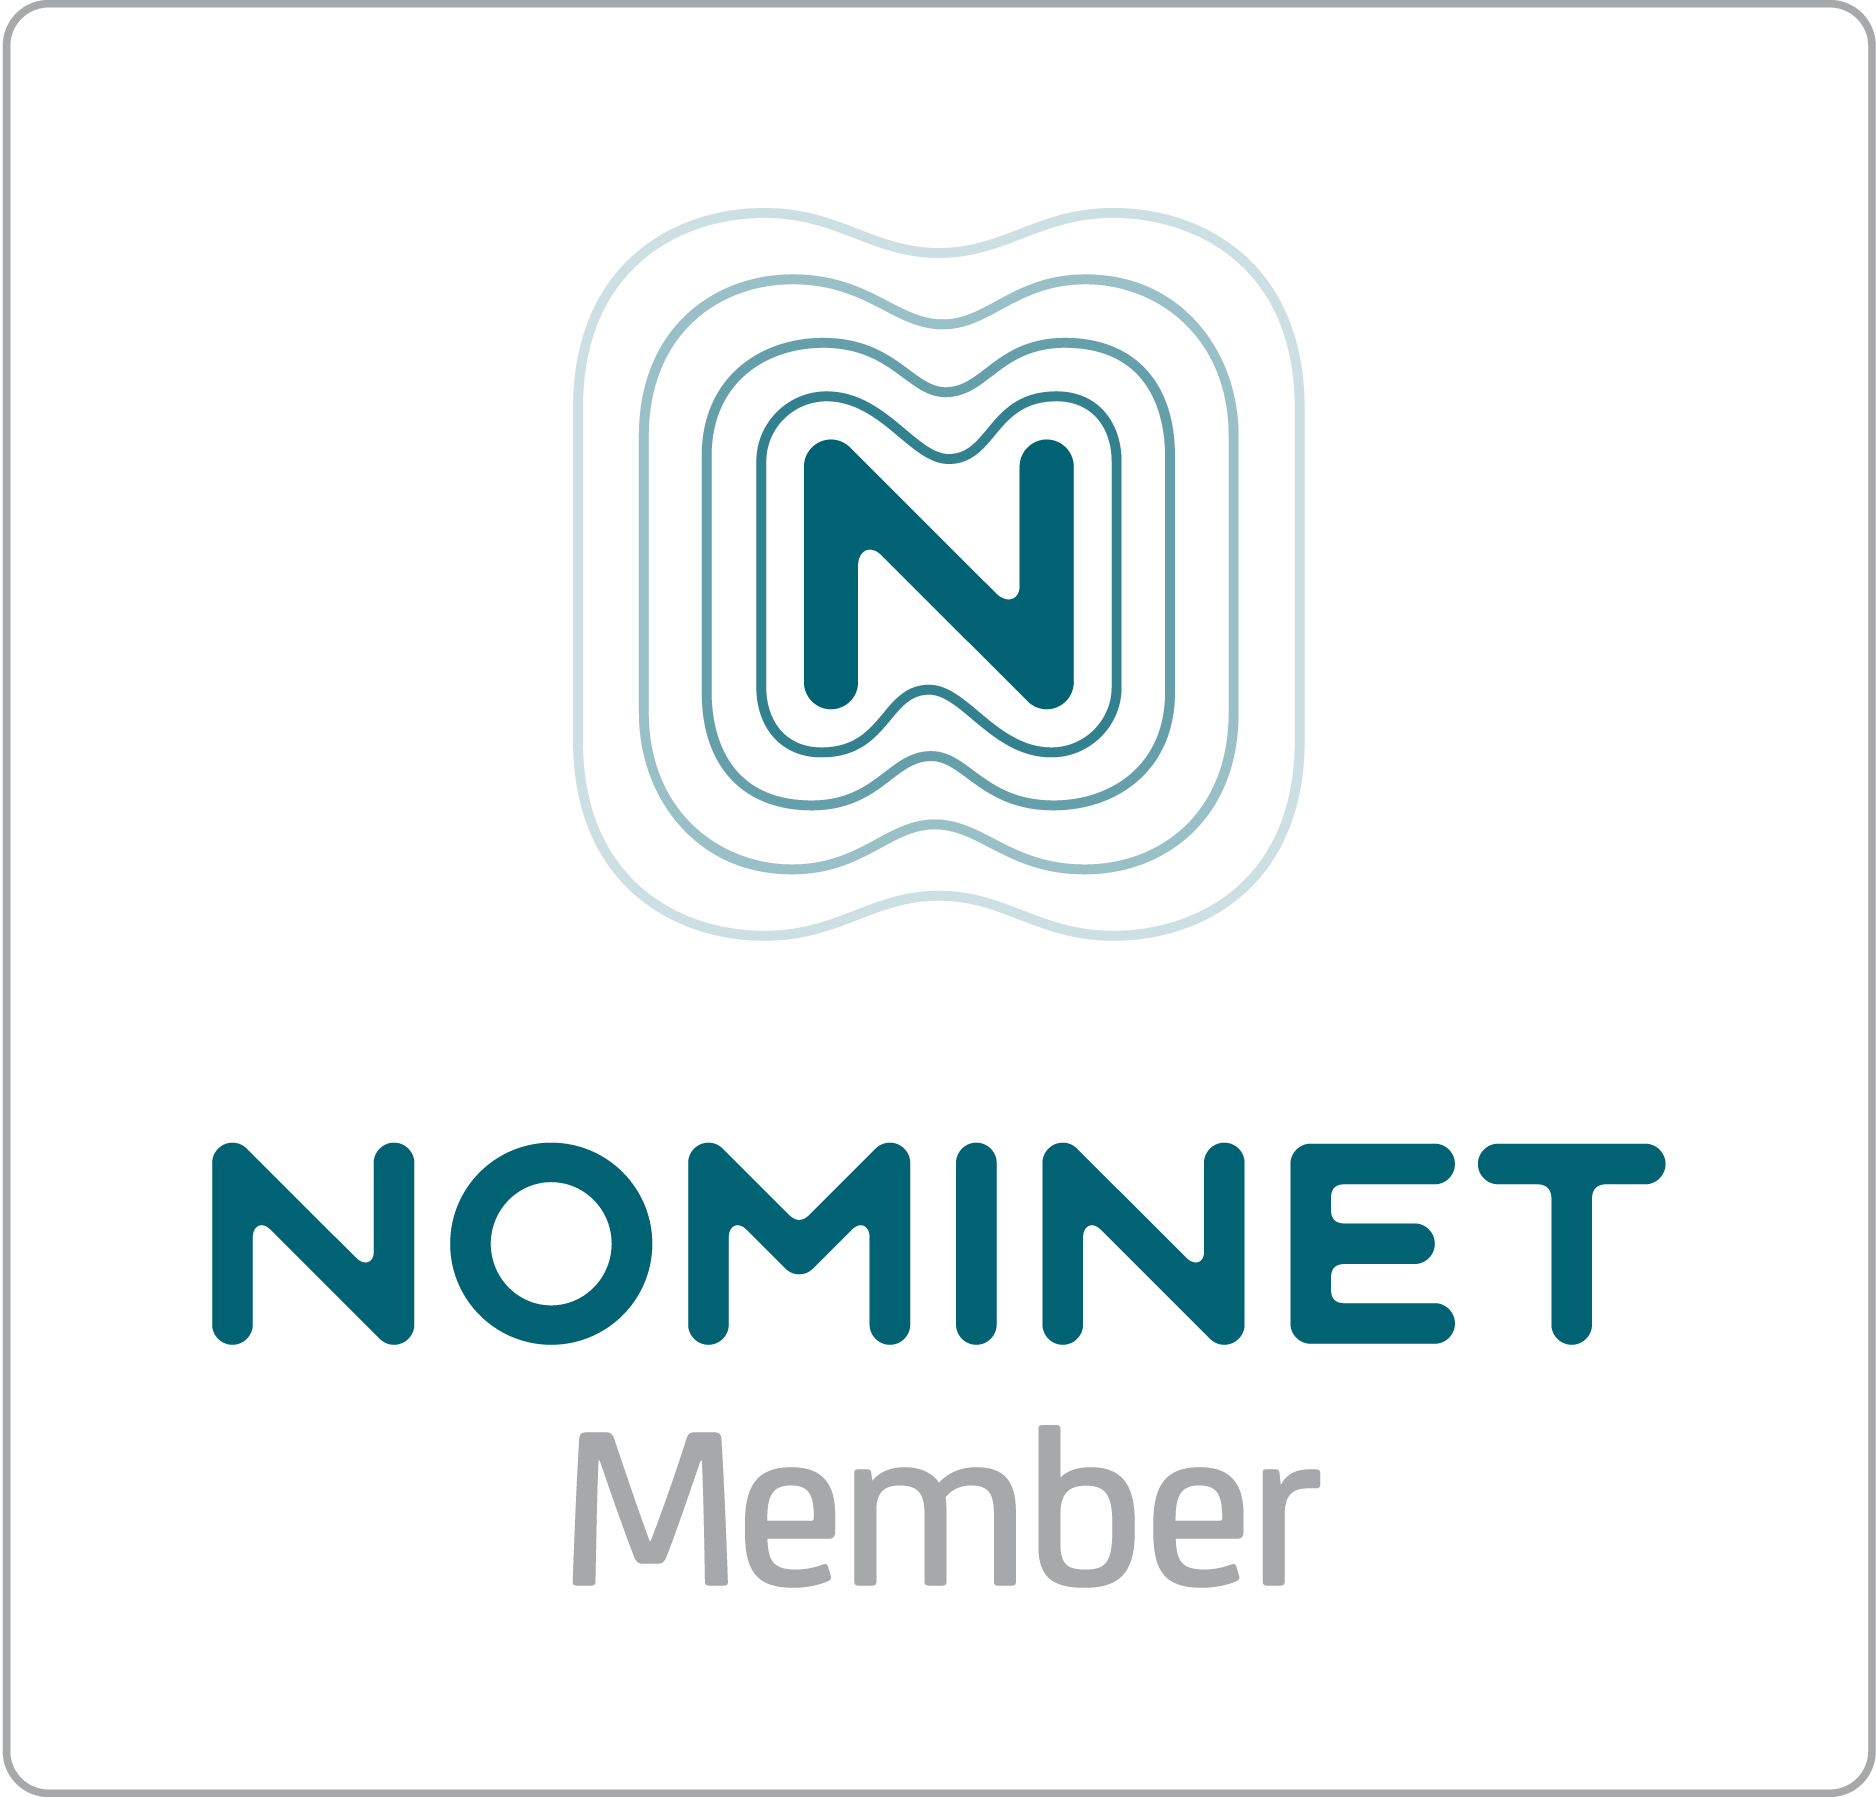 A member of Nominet.uk